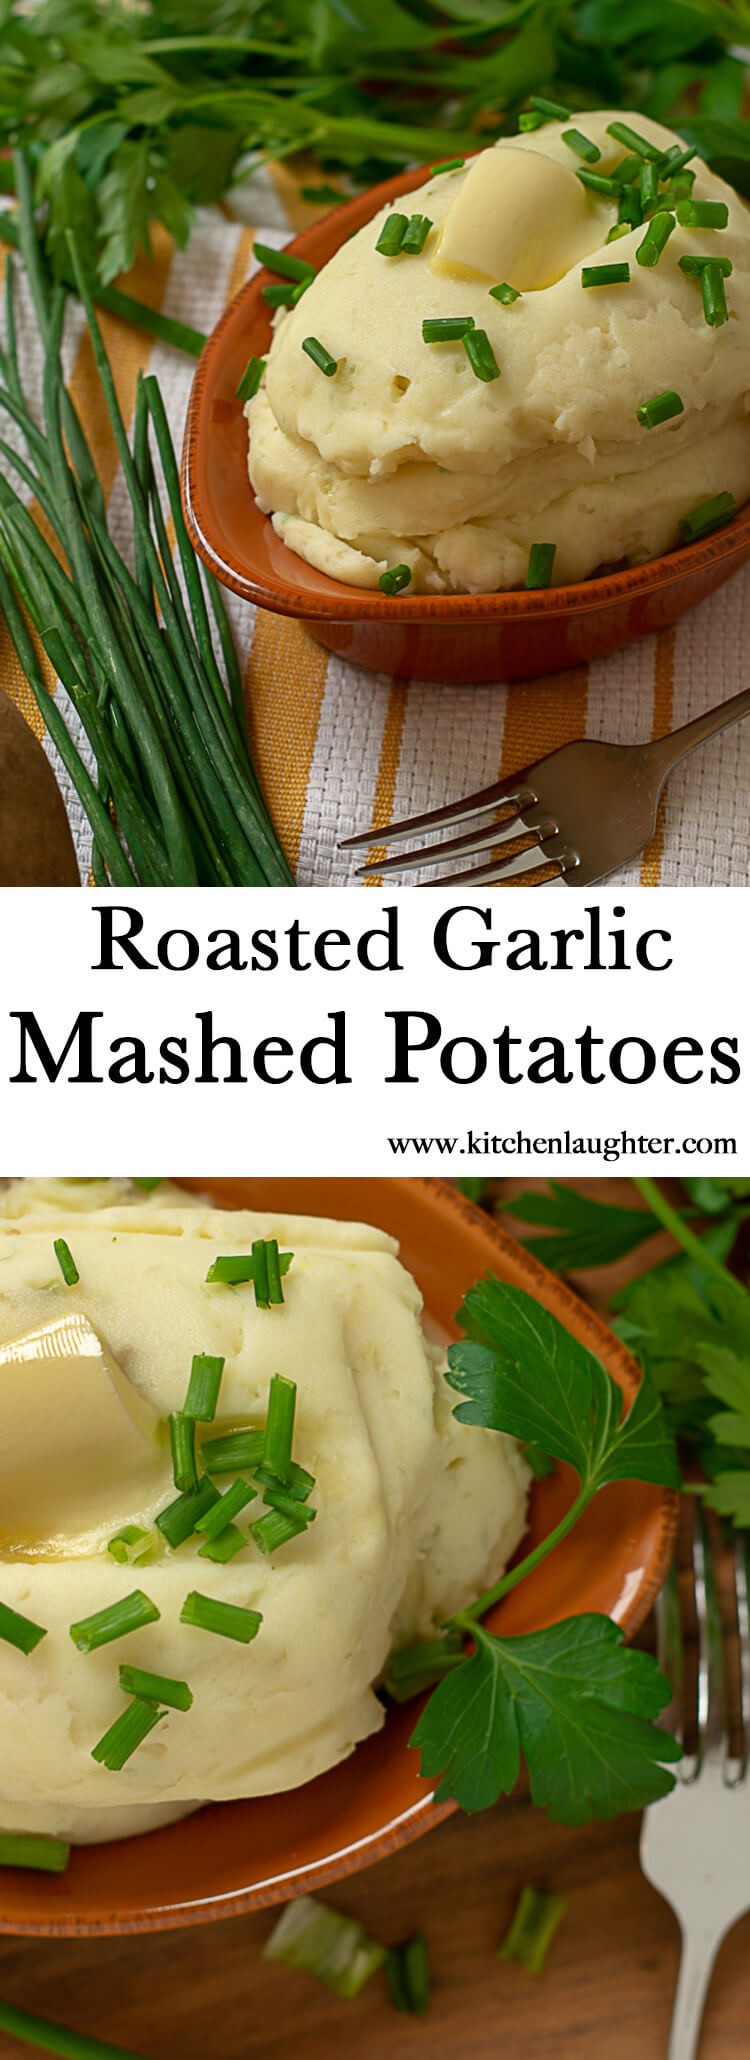 Roasted Garlic Mashed Potatoes #comfortfood #potatoes #mashedpotatoes #garlic #Creamy